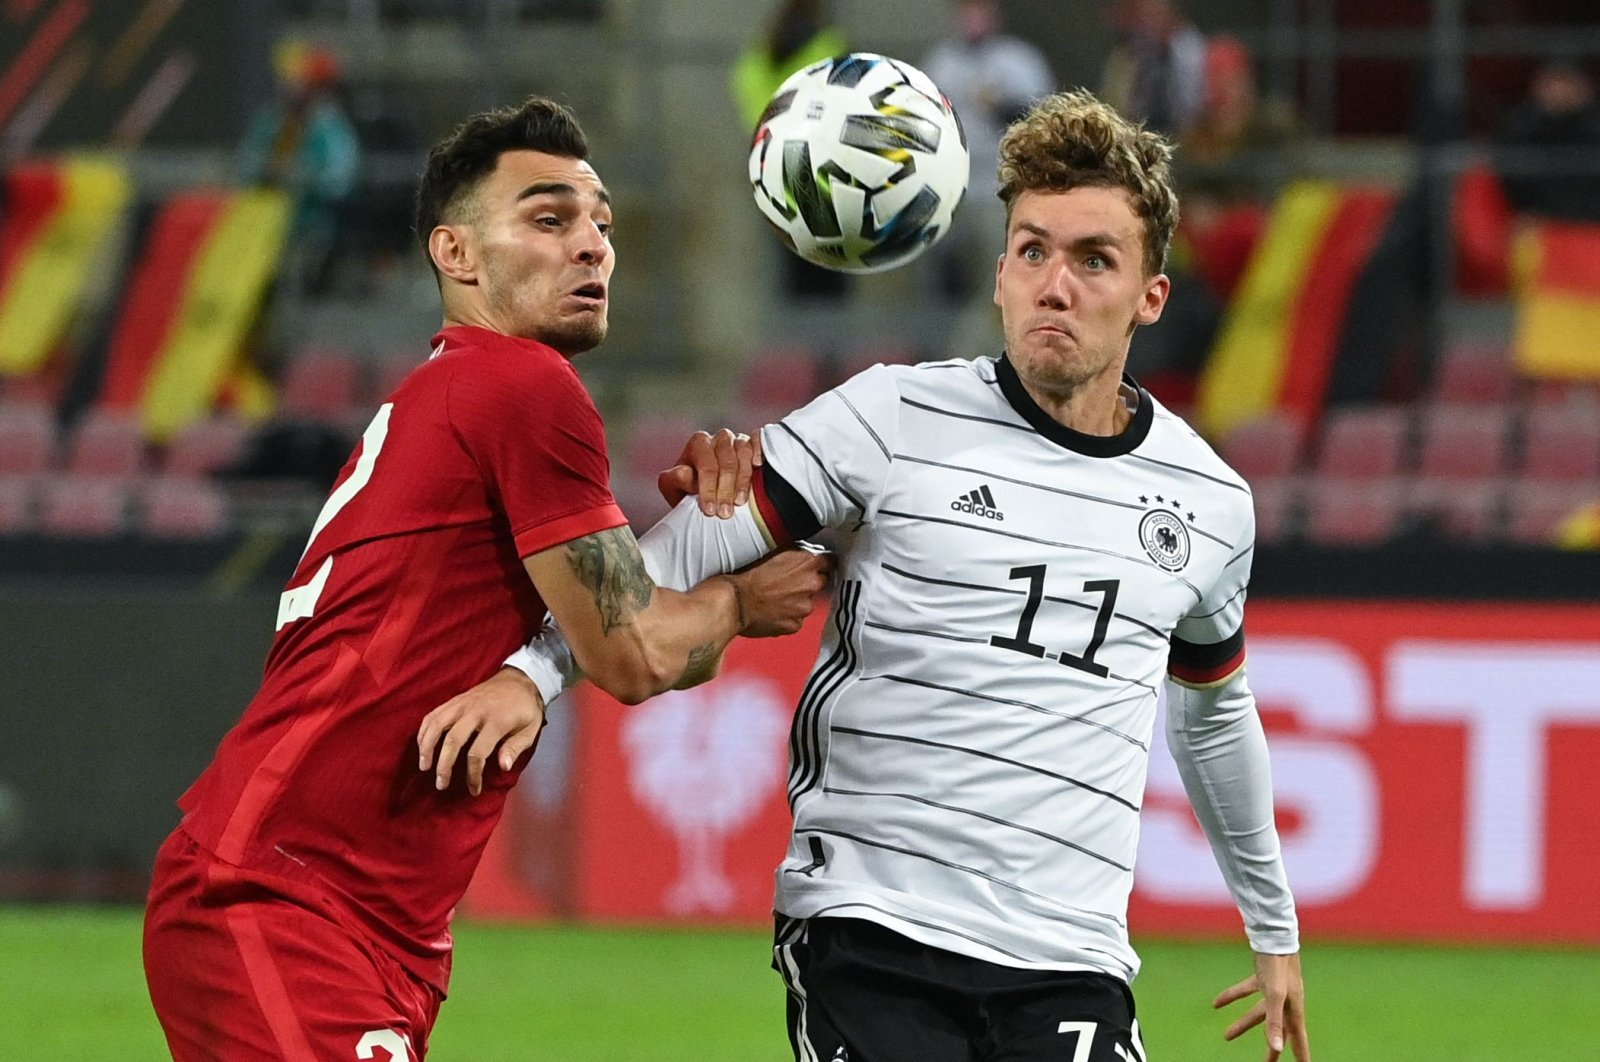 Germany's forward Luca Waldschmidt (R) vies for the ball with Turkey's midfielder Ahmed Kutucu (L) during the international friendly football match between Germany and Turkey in Cologne, western Germany, on October 7, 2020. (AFP Photo)